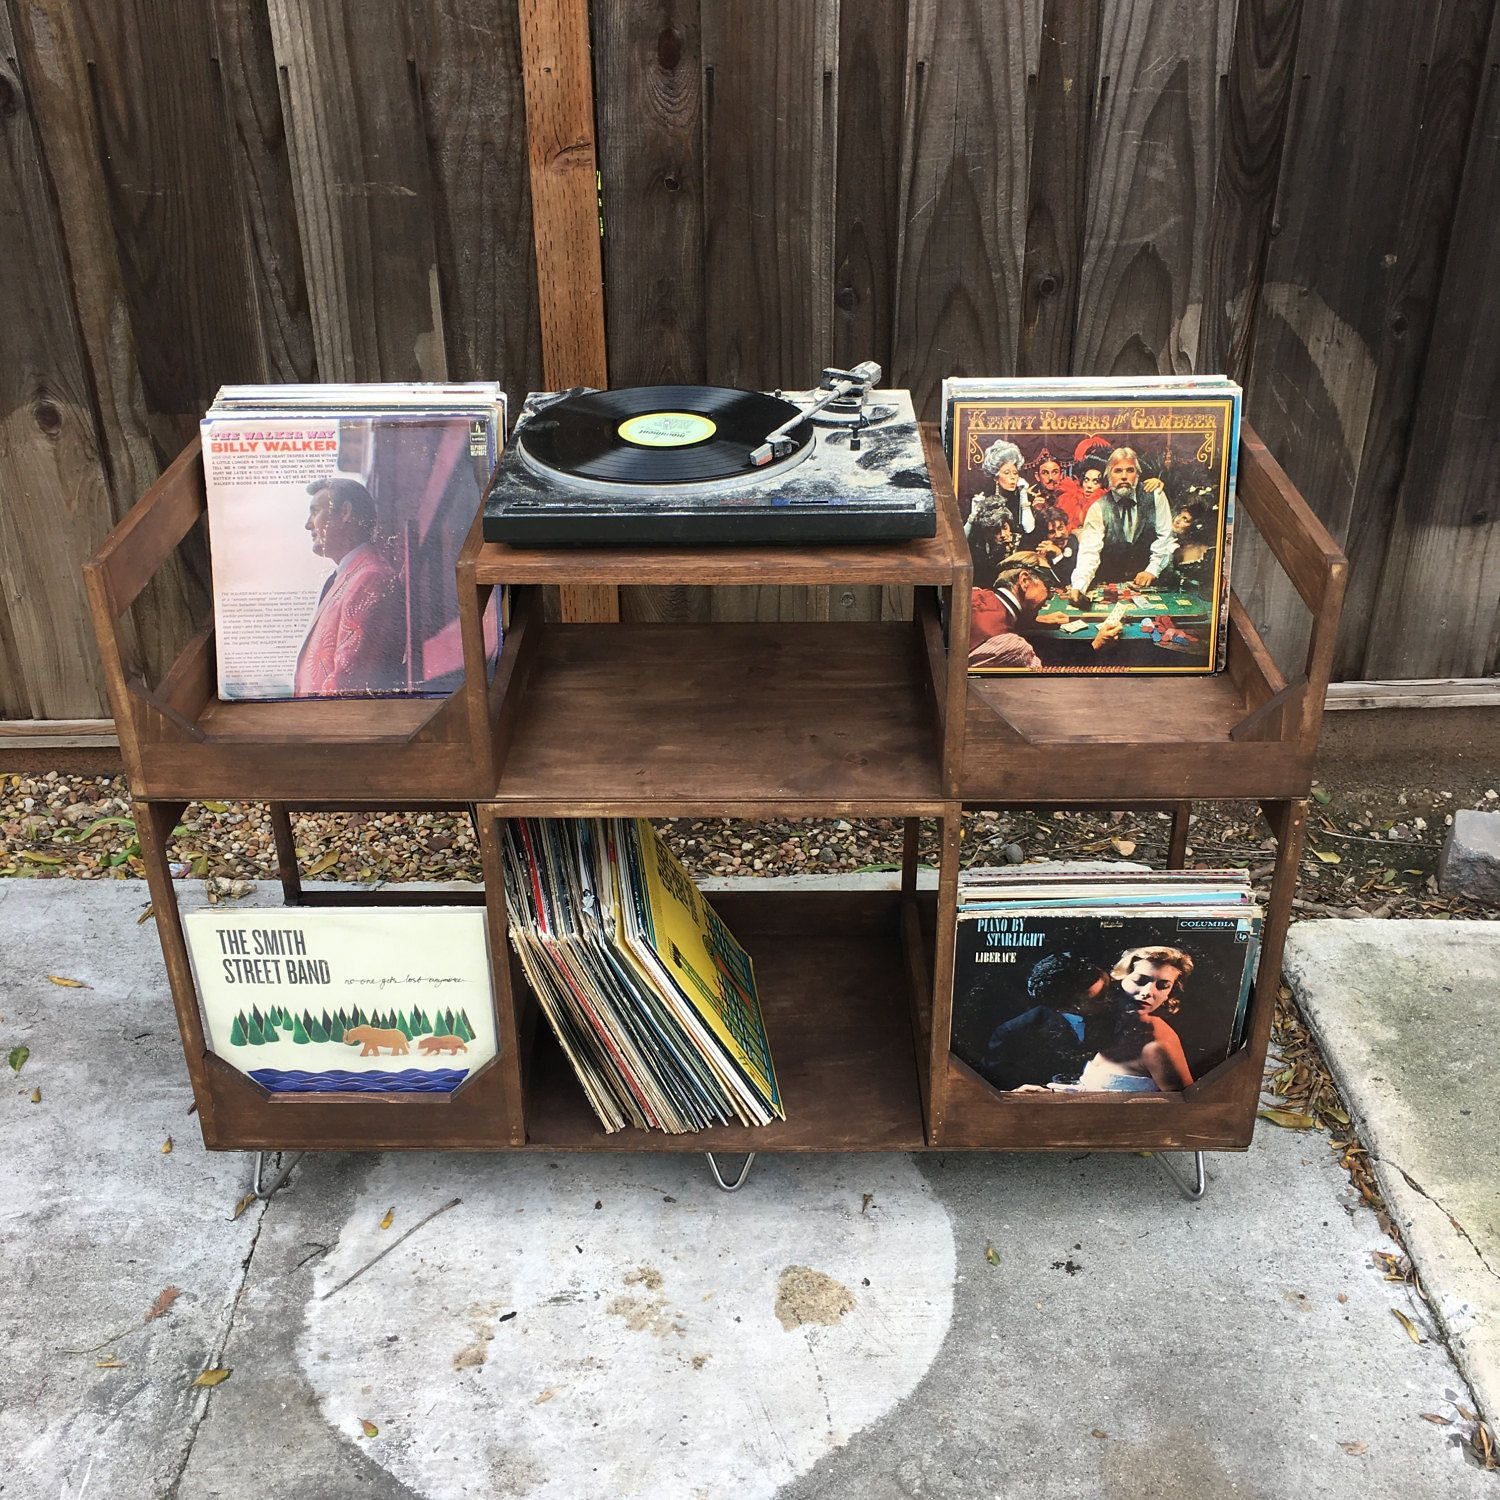 Deluxe Vinyl Display Turn Table Station Stylishly And Conveniently Display And Spin Your Collect Vinyl Storage Vinyl Record Storage Diy Vinyl Record Storage